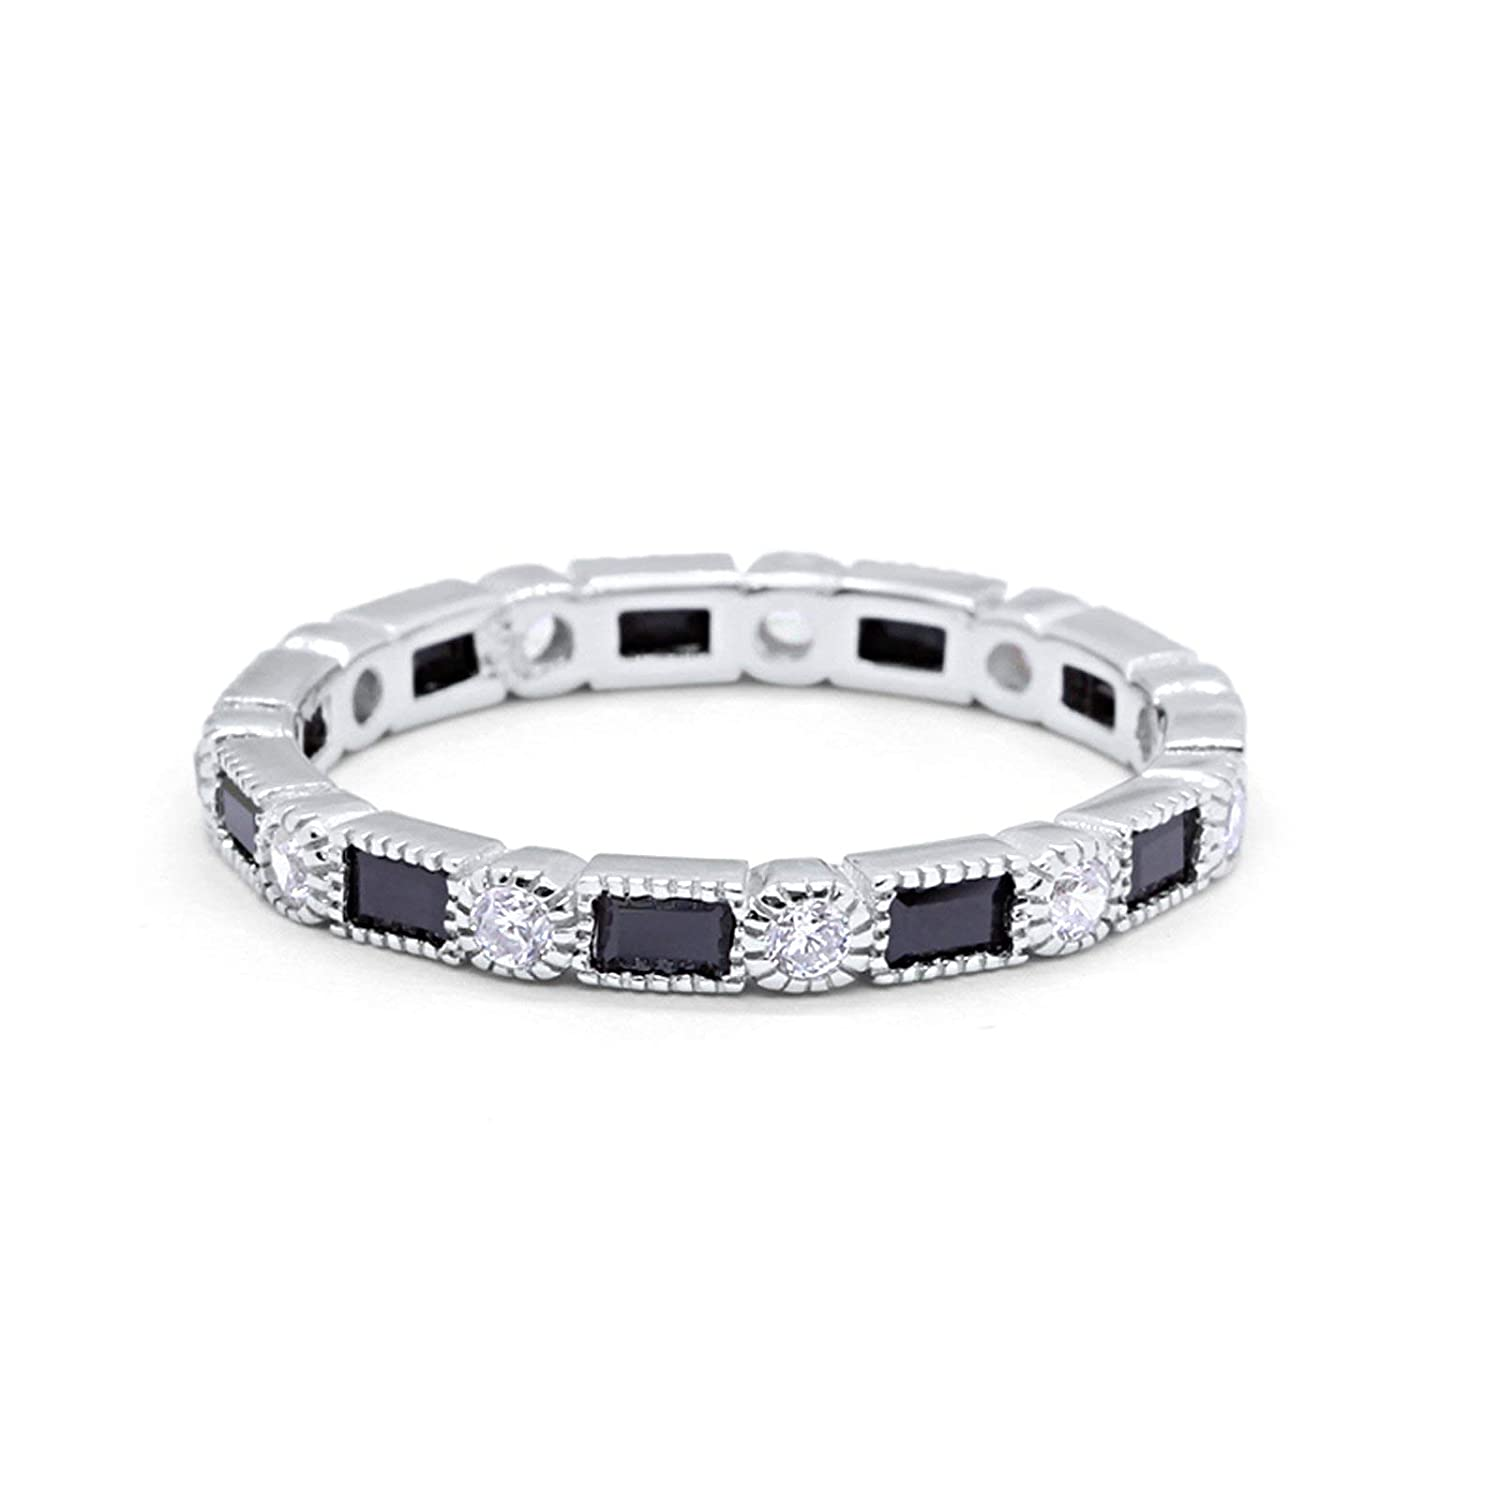 3mm Art Deco Full Eternity Wedding Band Baguette Round Cubic Zirconia 925 Sterling Silver Choose Color Blue Apple Co